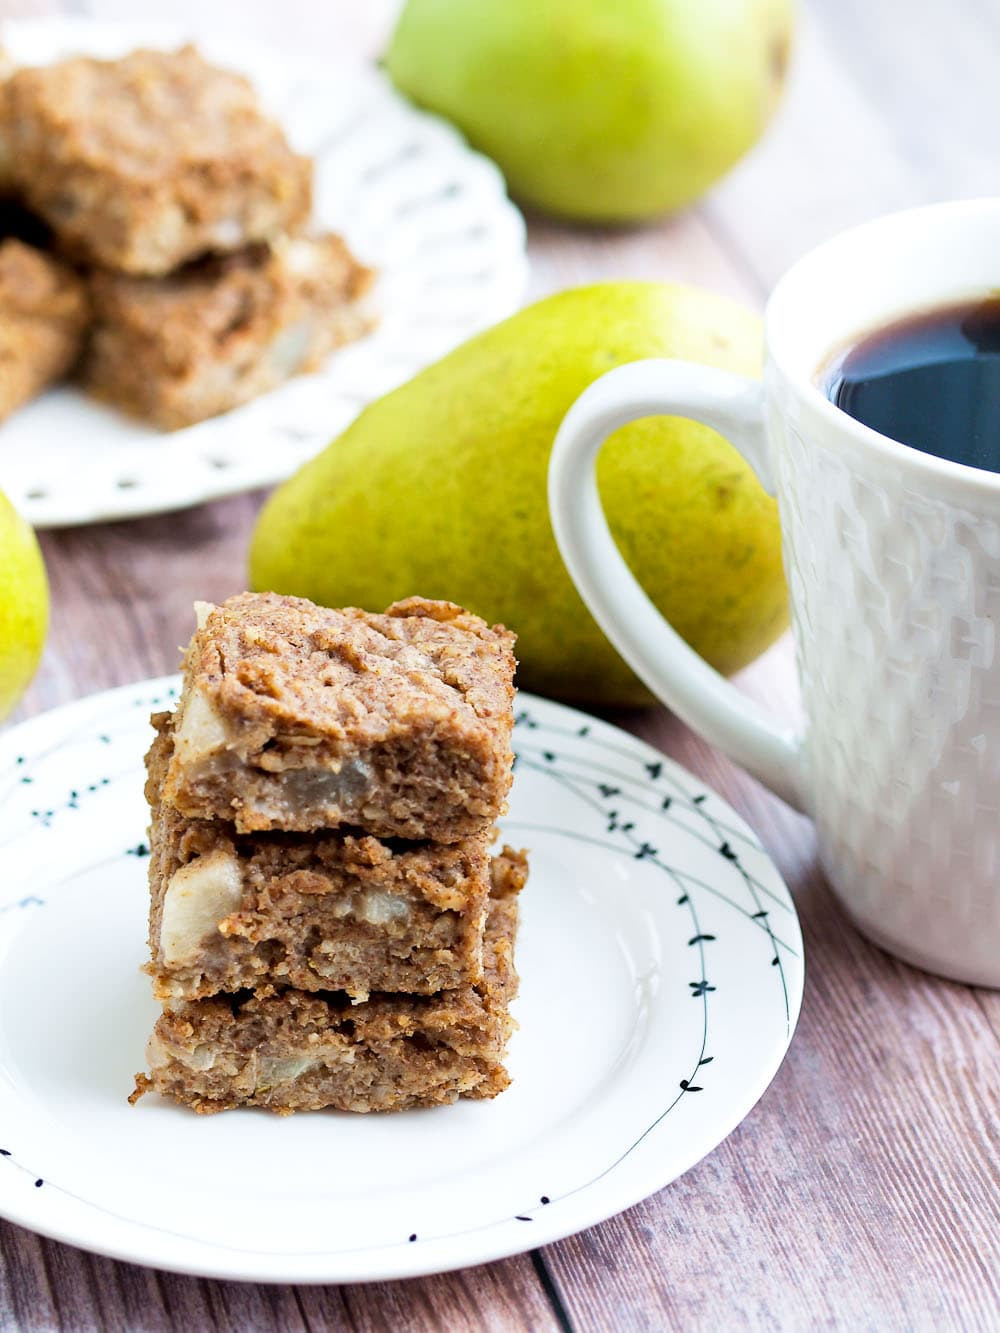 pear oatmeal bar on a plate with a cup of coffee